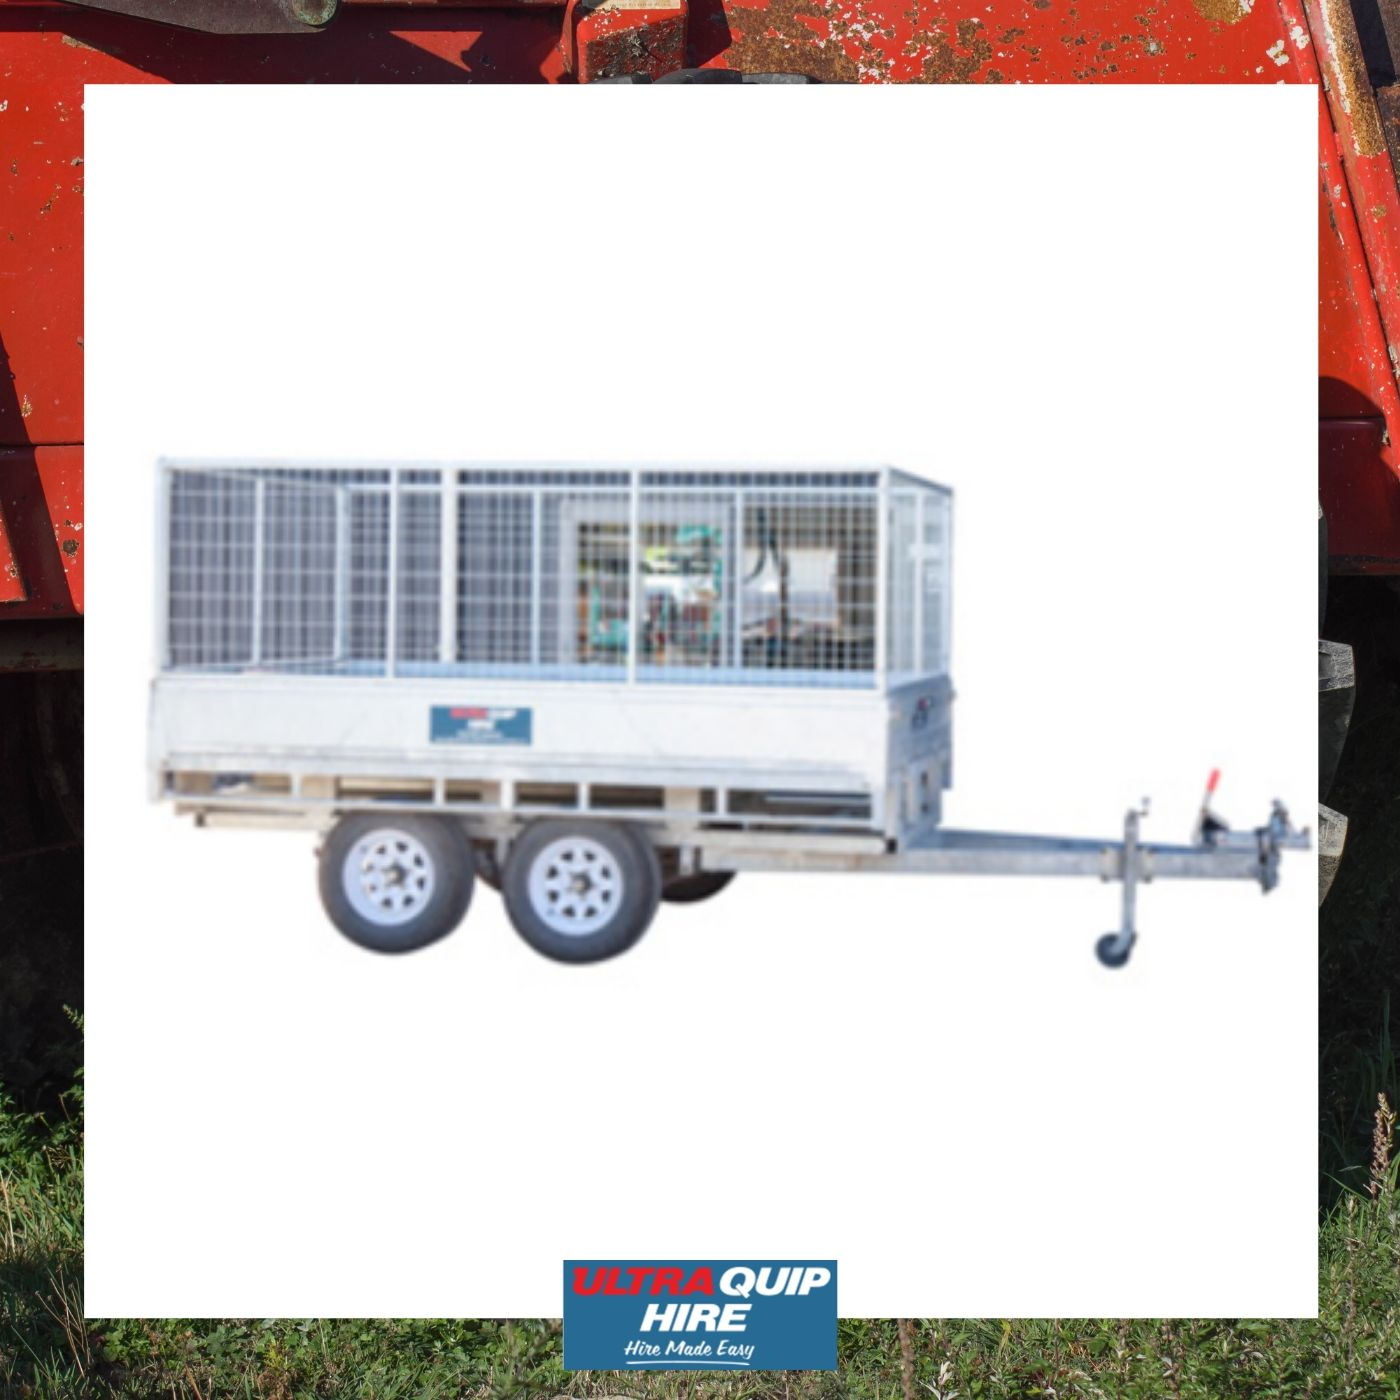 Ultraquip hire trailer single dual triple 2 3 axle caged rent kennards hirepool Hireace